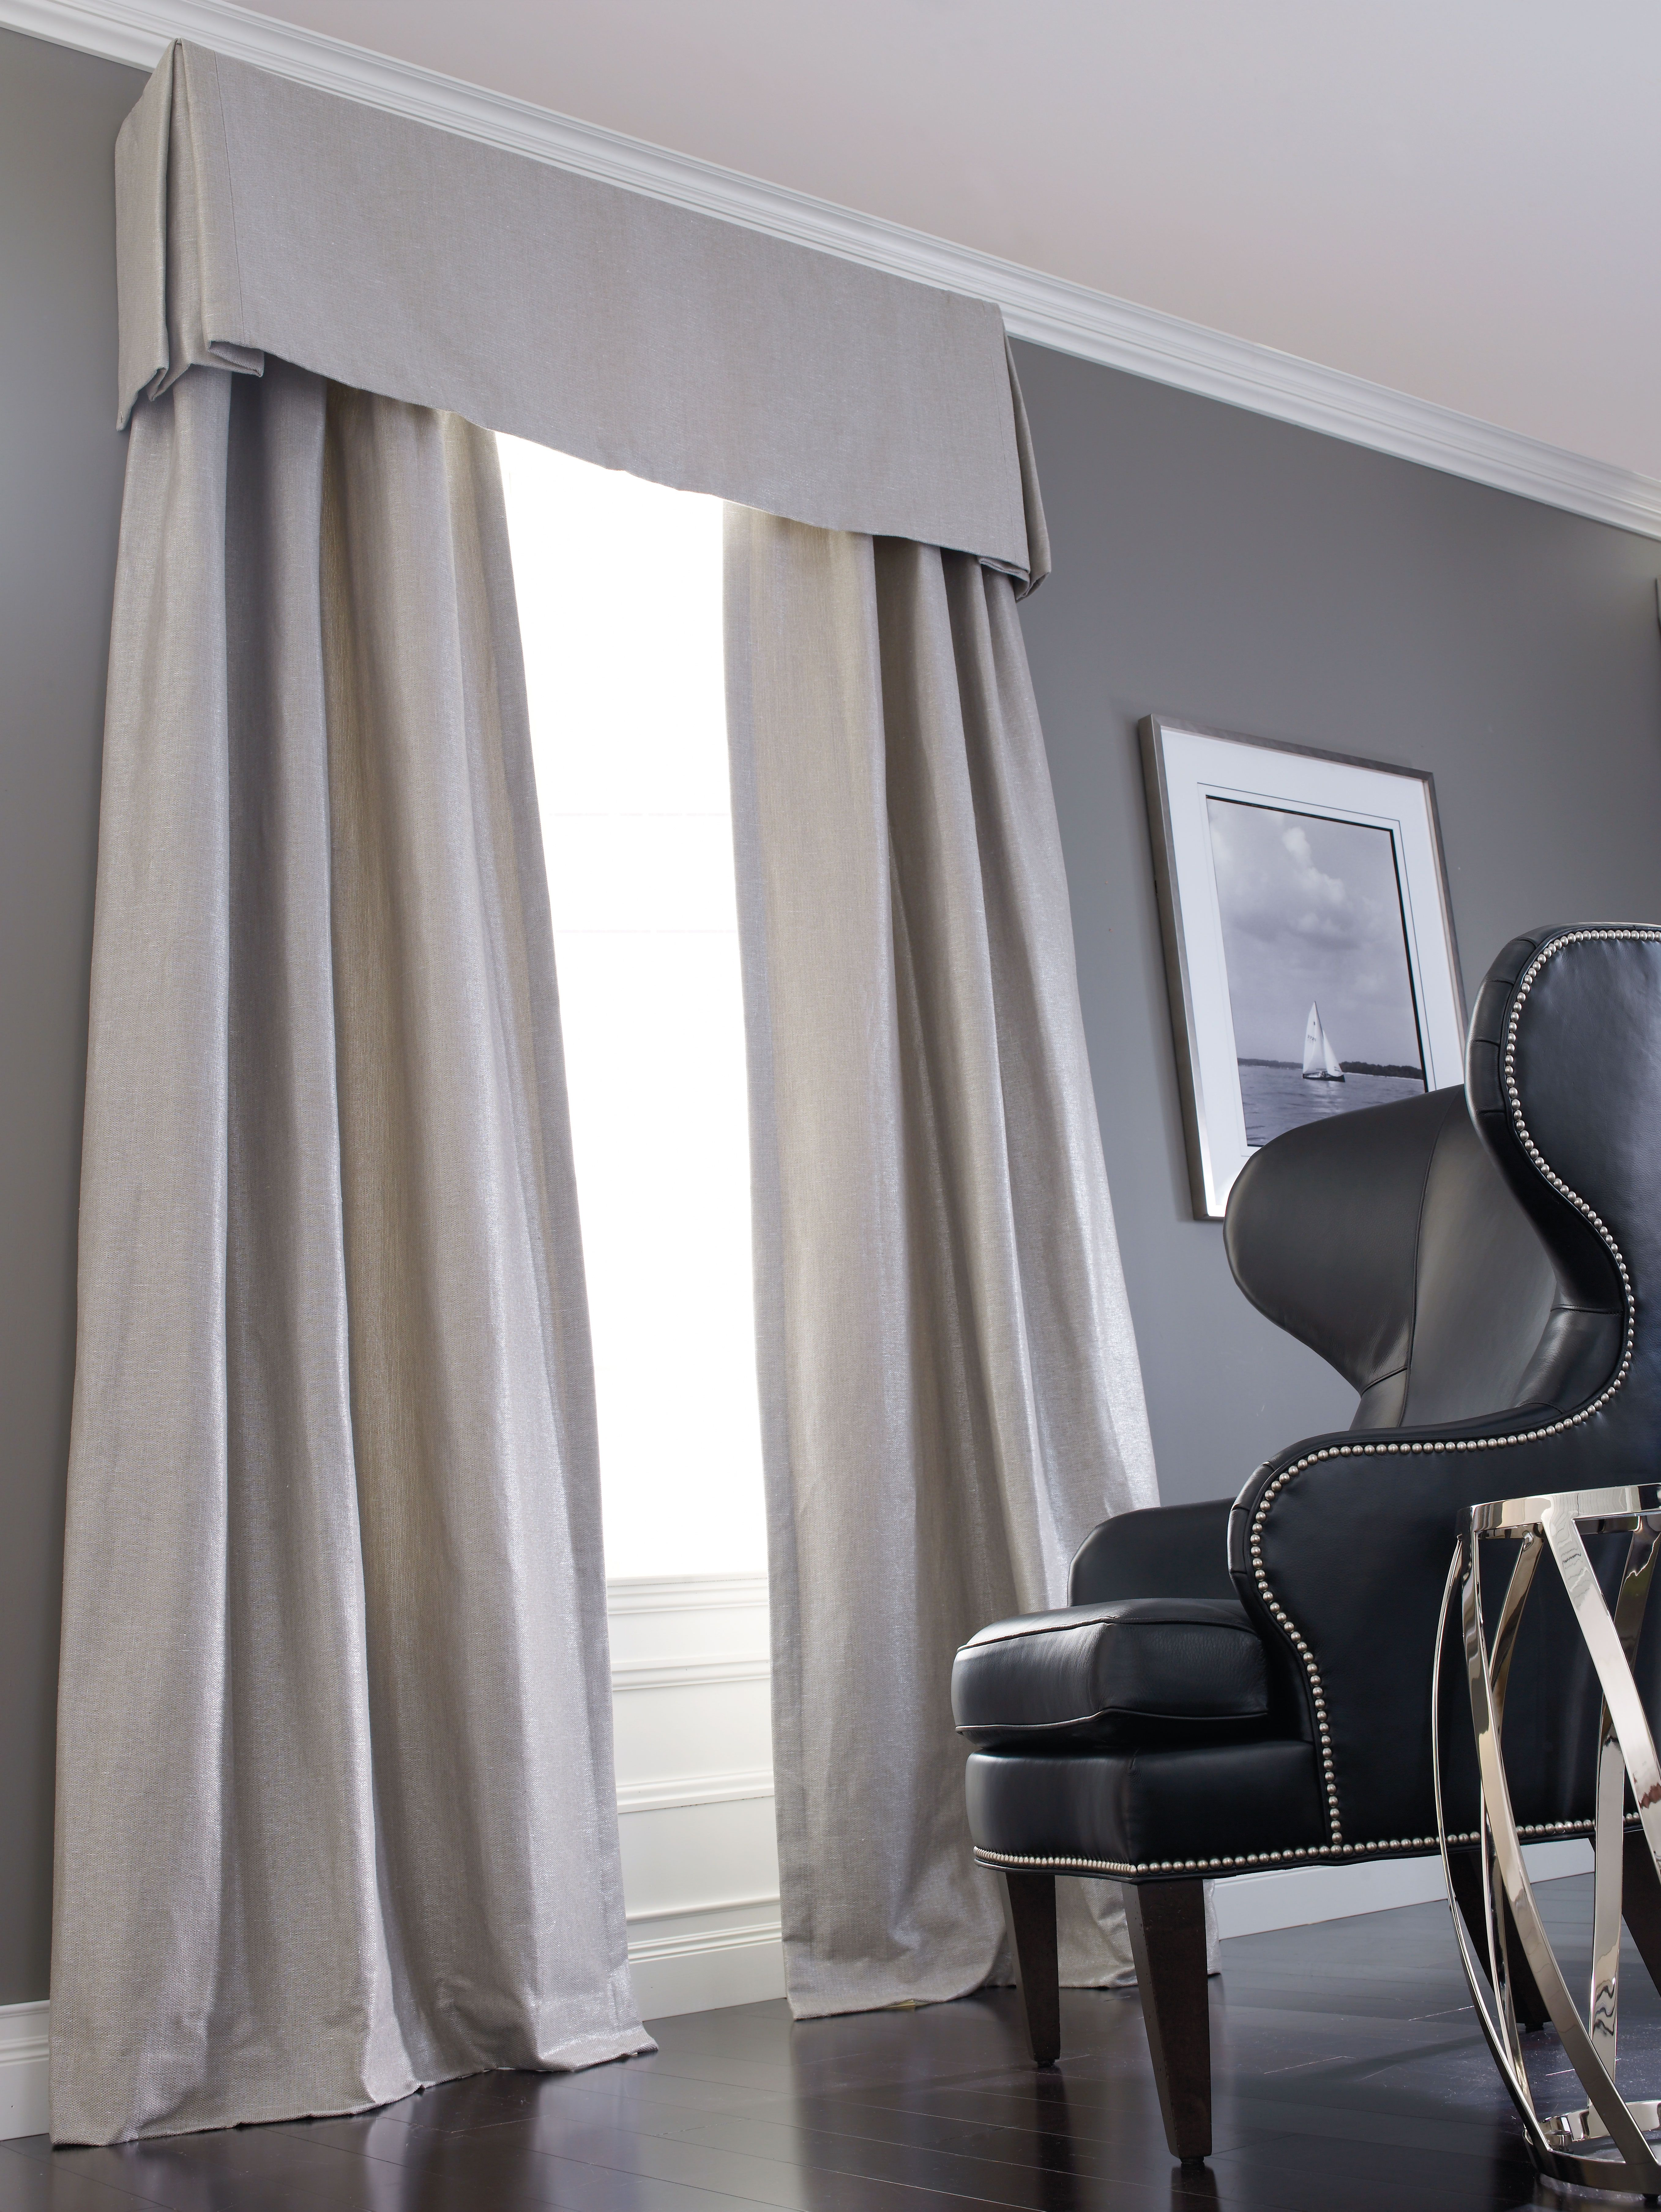 Dynamic duo structured linen and sleek black leather window